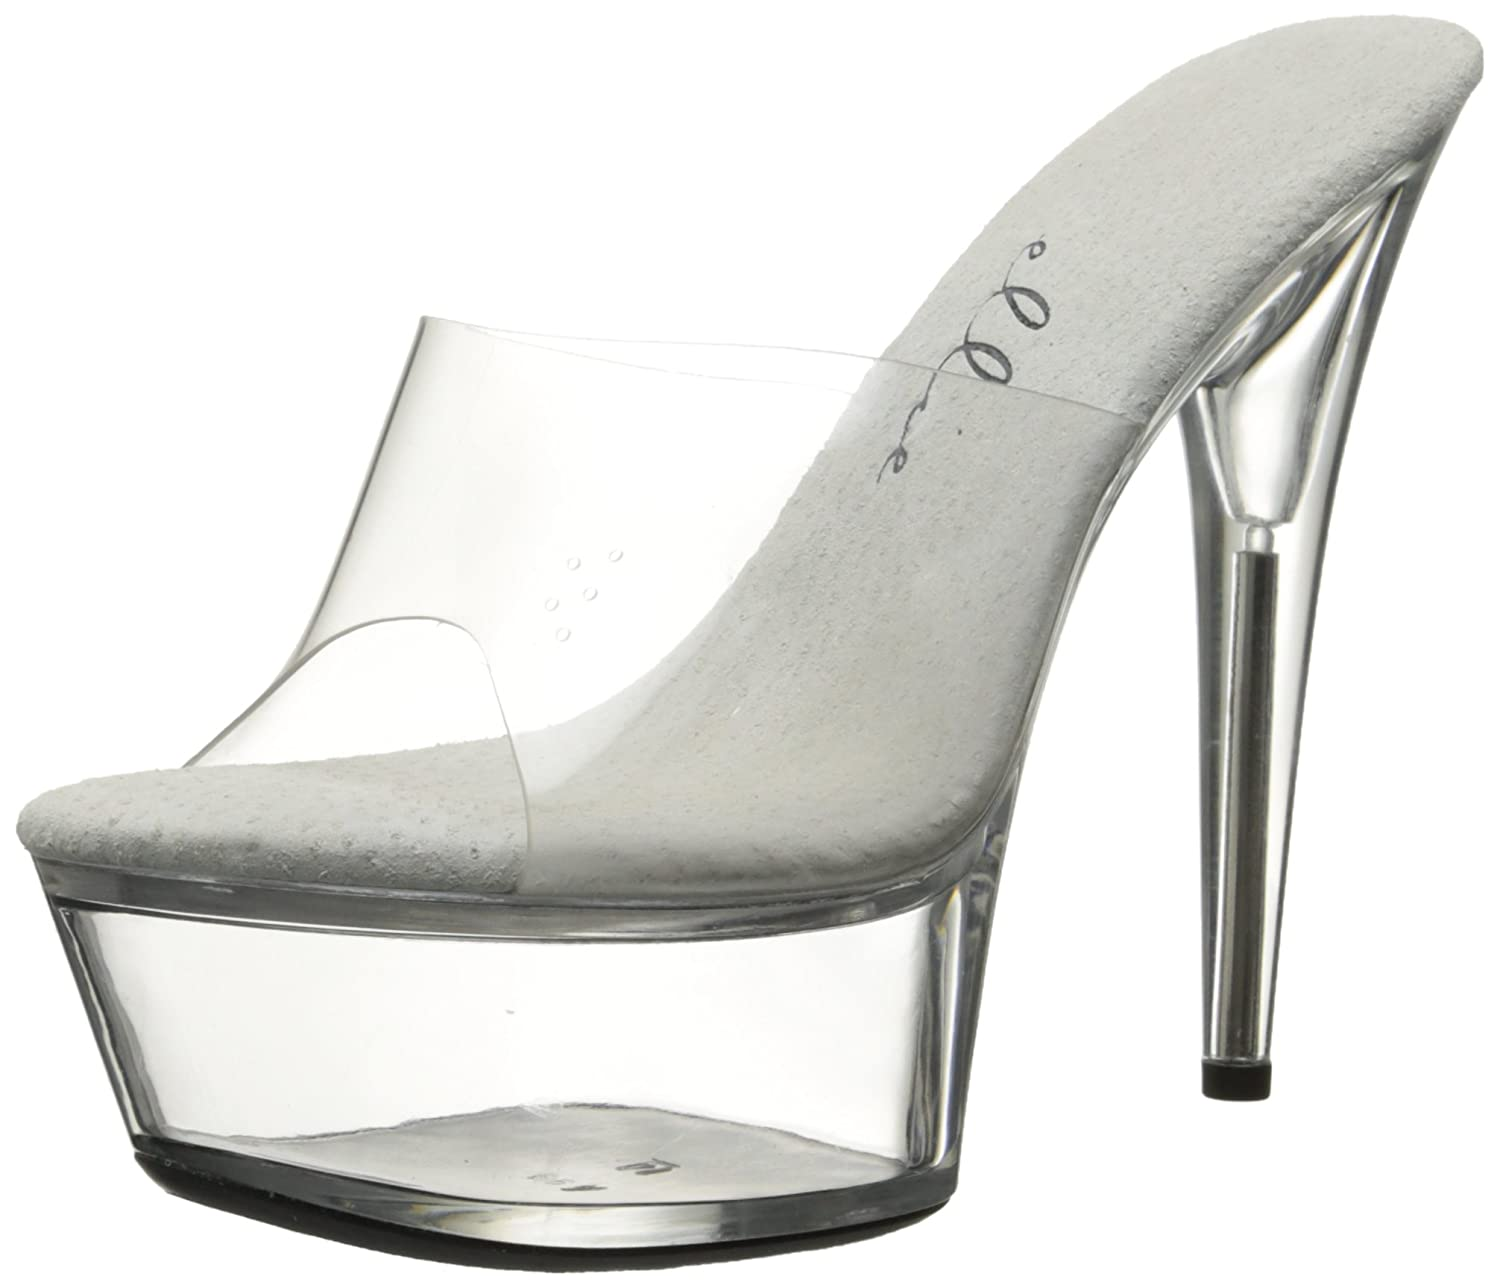 Ellie Shoes Women's 609 Vanity Platform Sandal B000B7CN4I 8 B(M) US|Clear